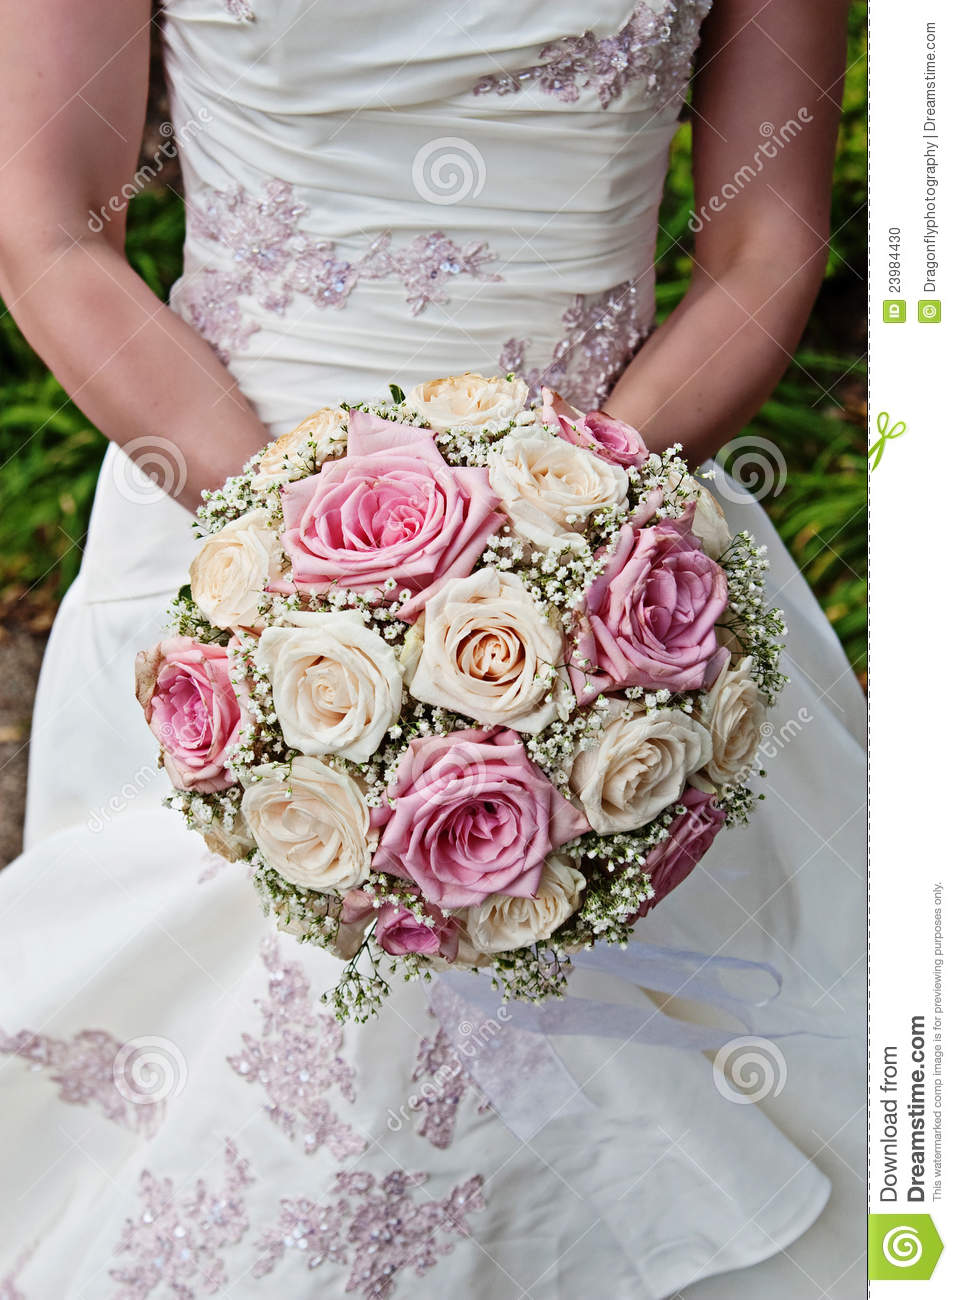 Pink And White Rose Bridal Bouquet Stock Photo - Image: 23984430